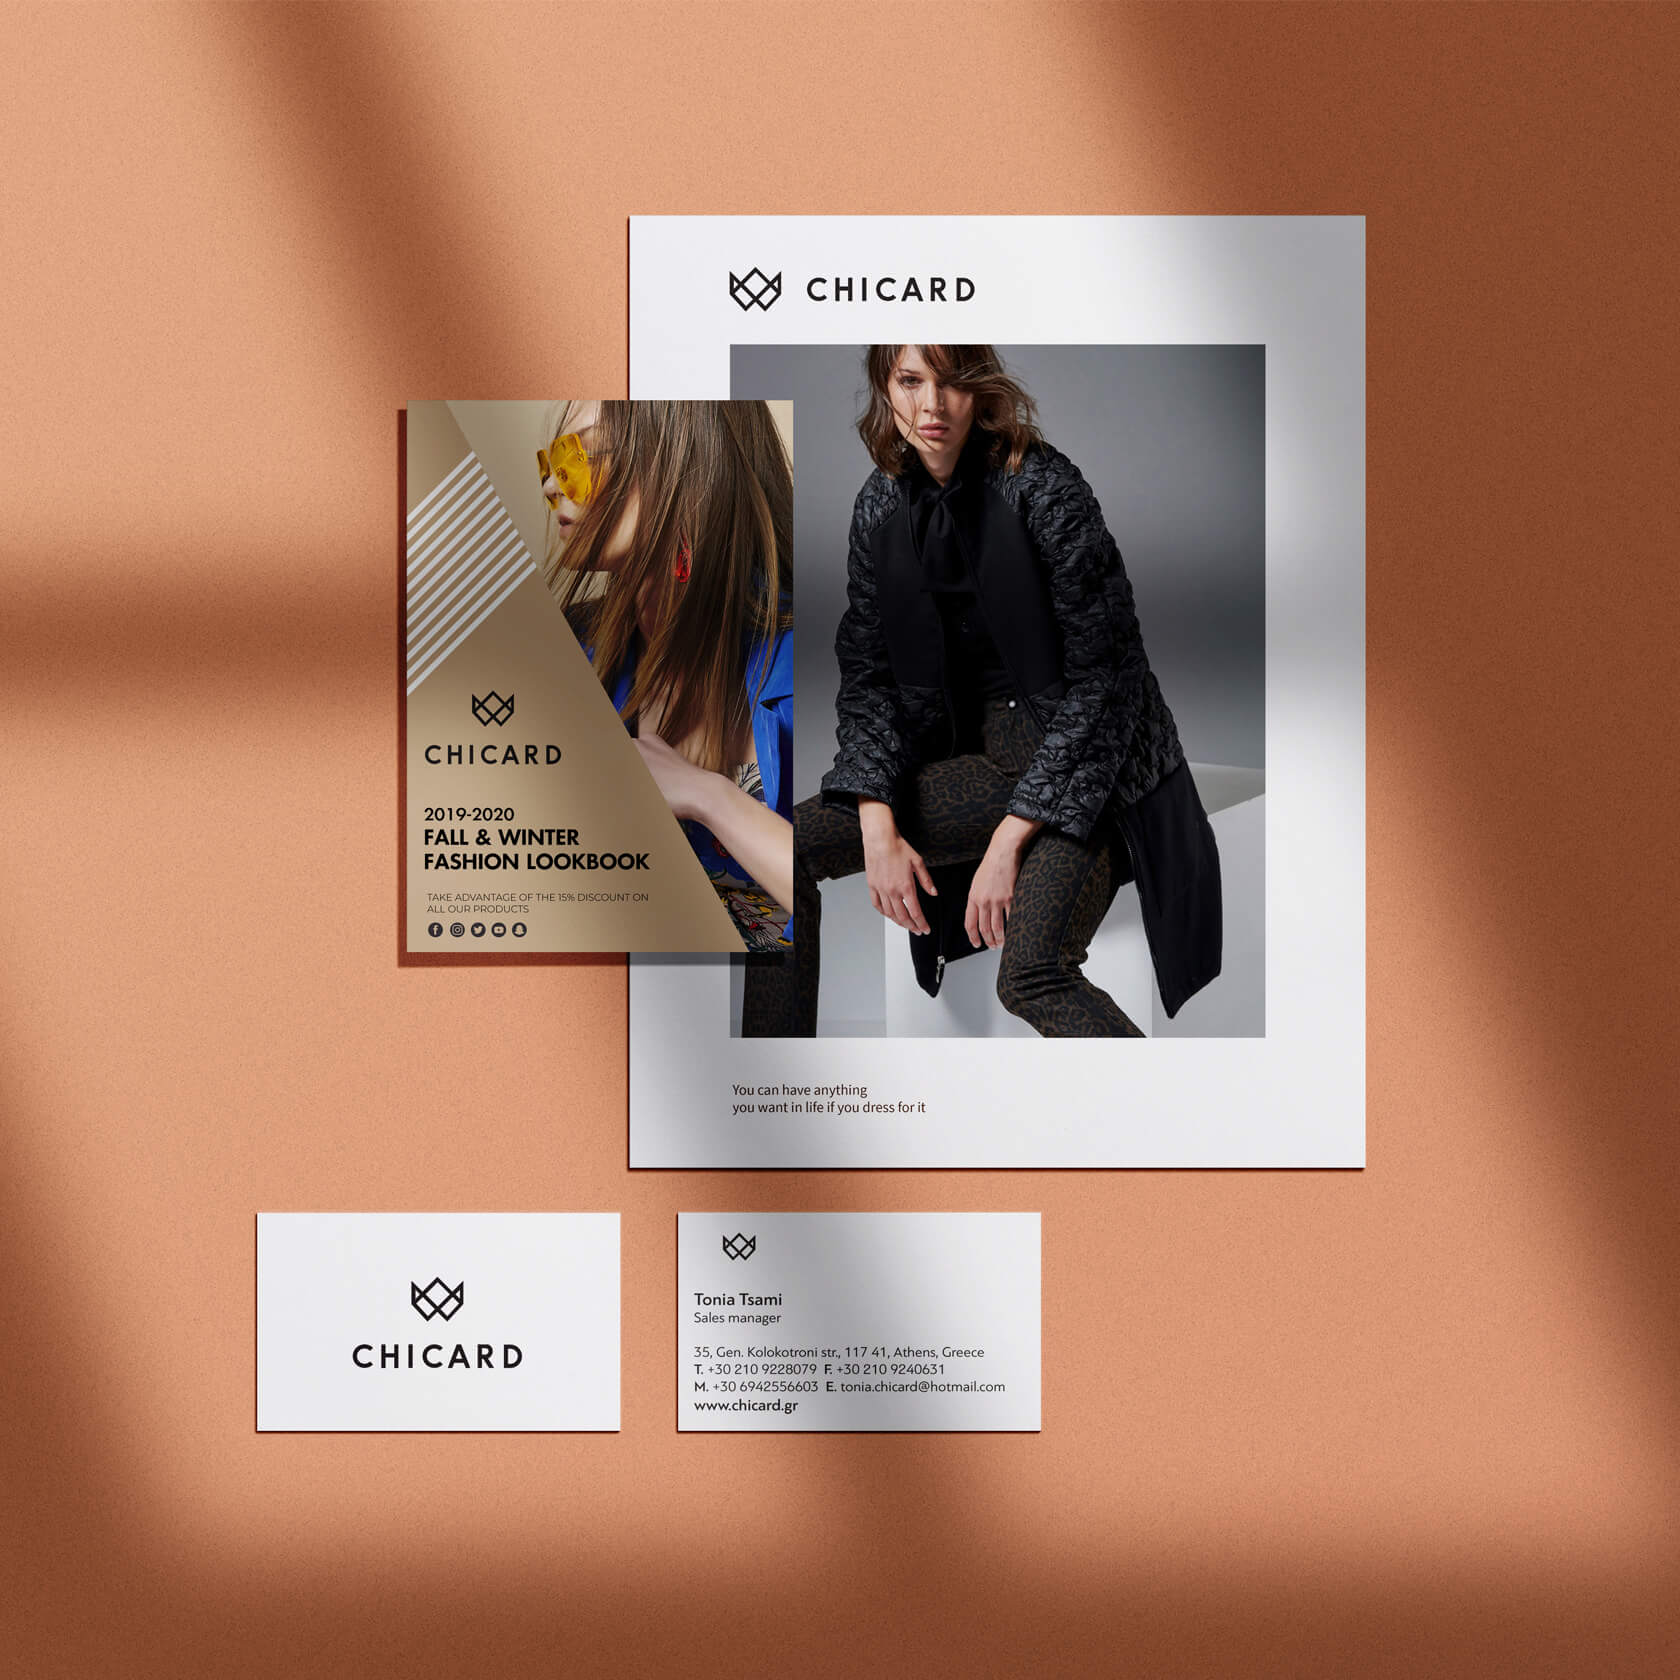 chicard wome's fashion corporate id